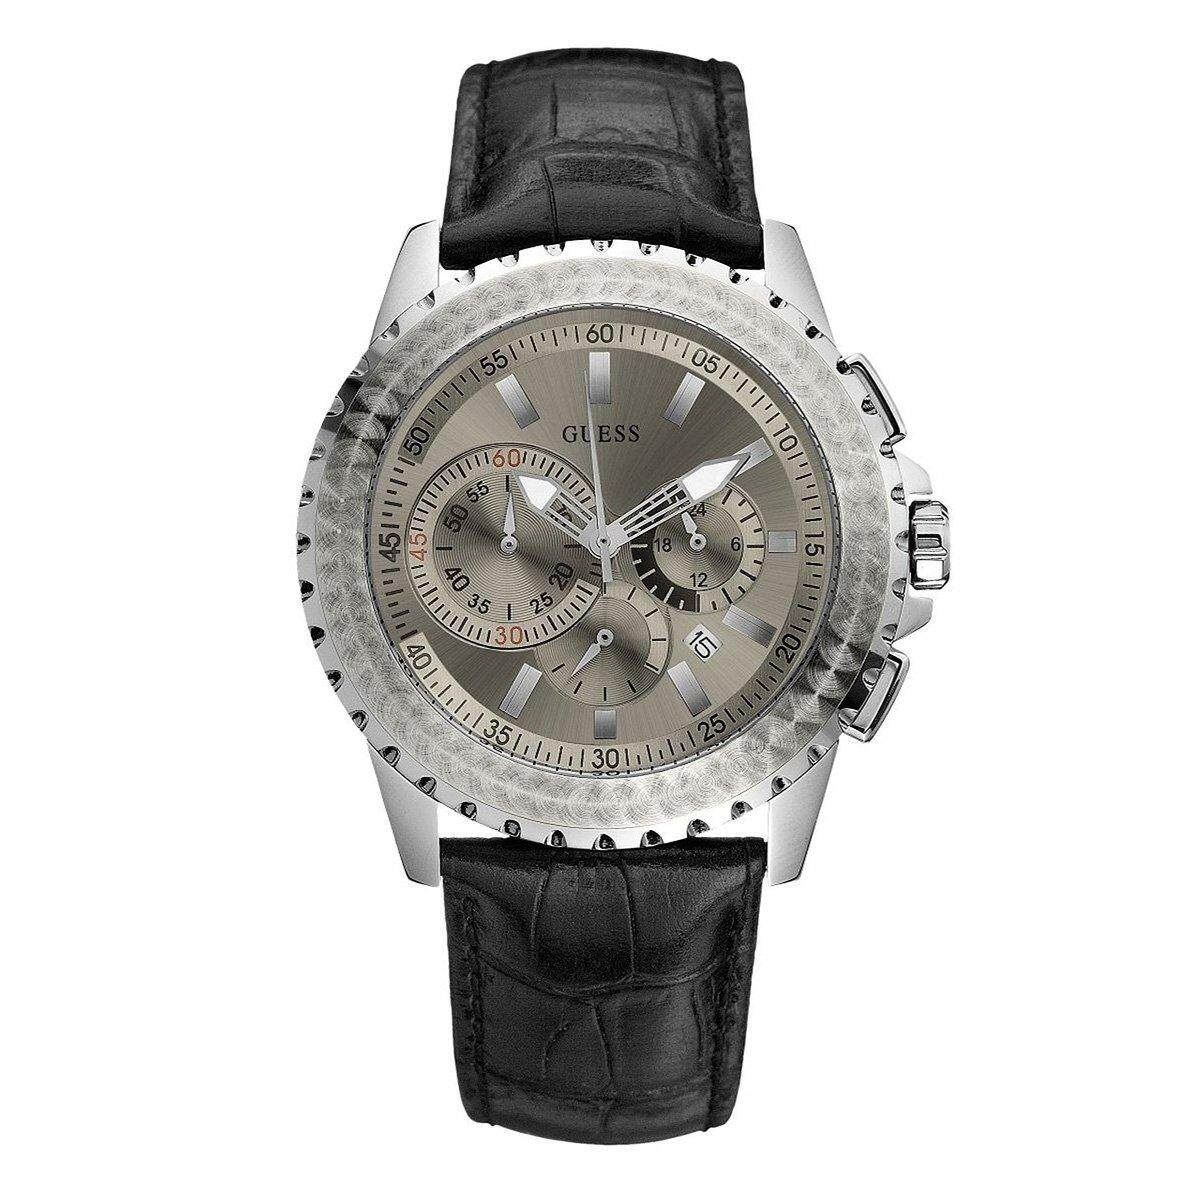 Guess Jam Tangan Wanita Strap Silver W0837l1 Update Daftar Harga W0764l1 Chronograph Black Stainless Steel Case Leather Mens W17523g1